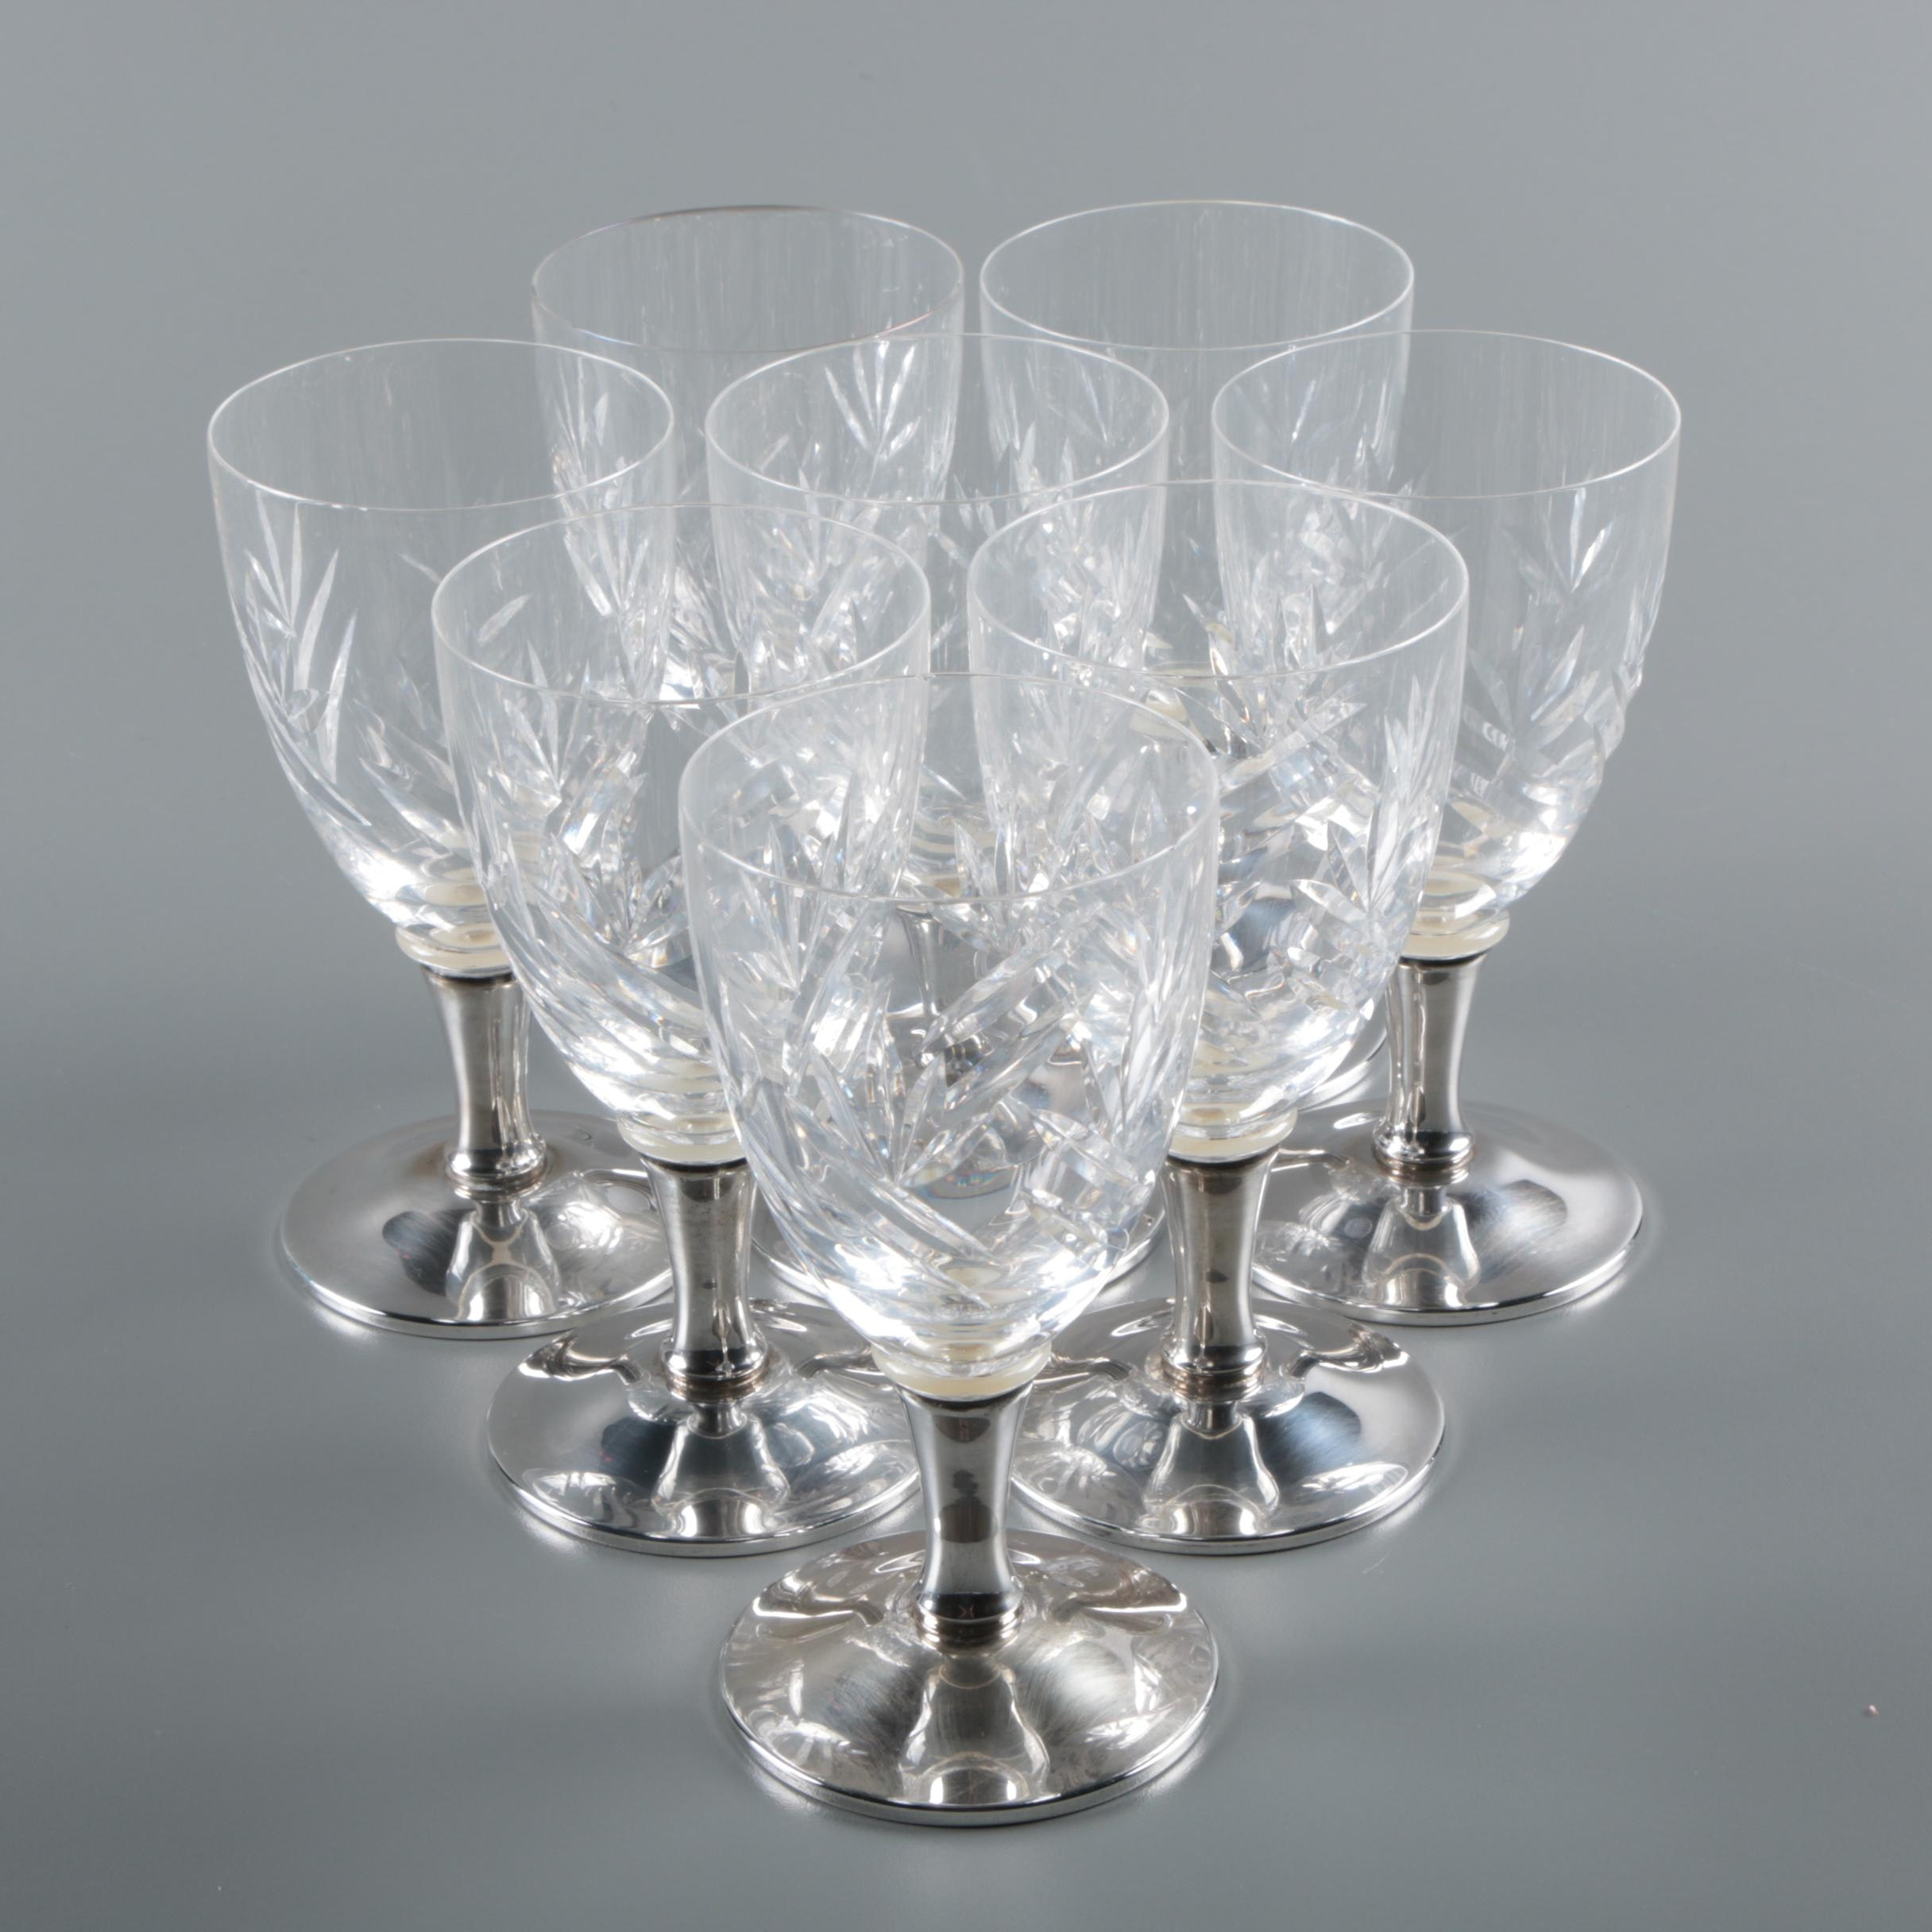 Vintage Gorham Crystal and Weighted Sterling Silver Wine Glasses